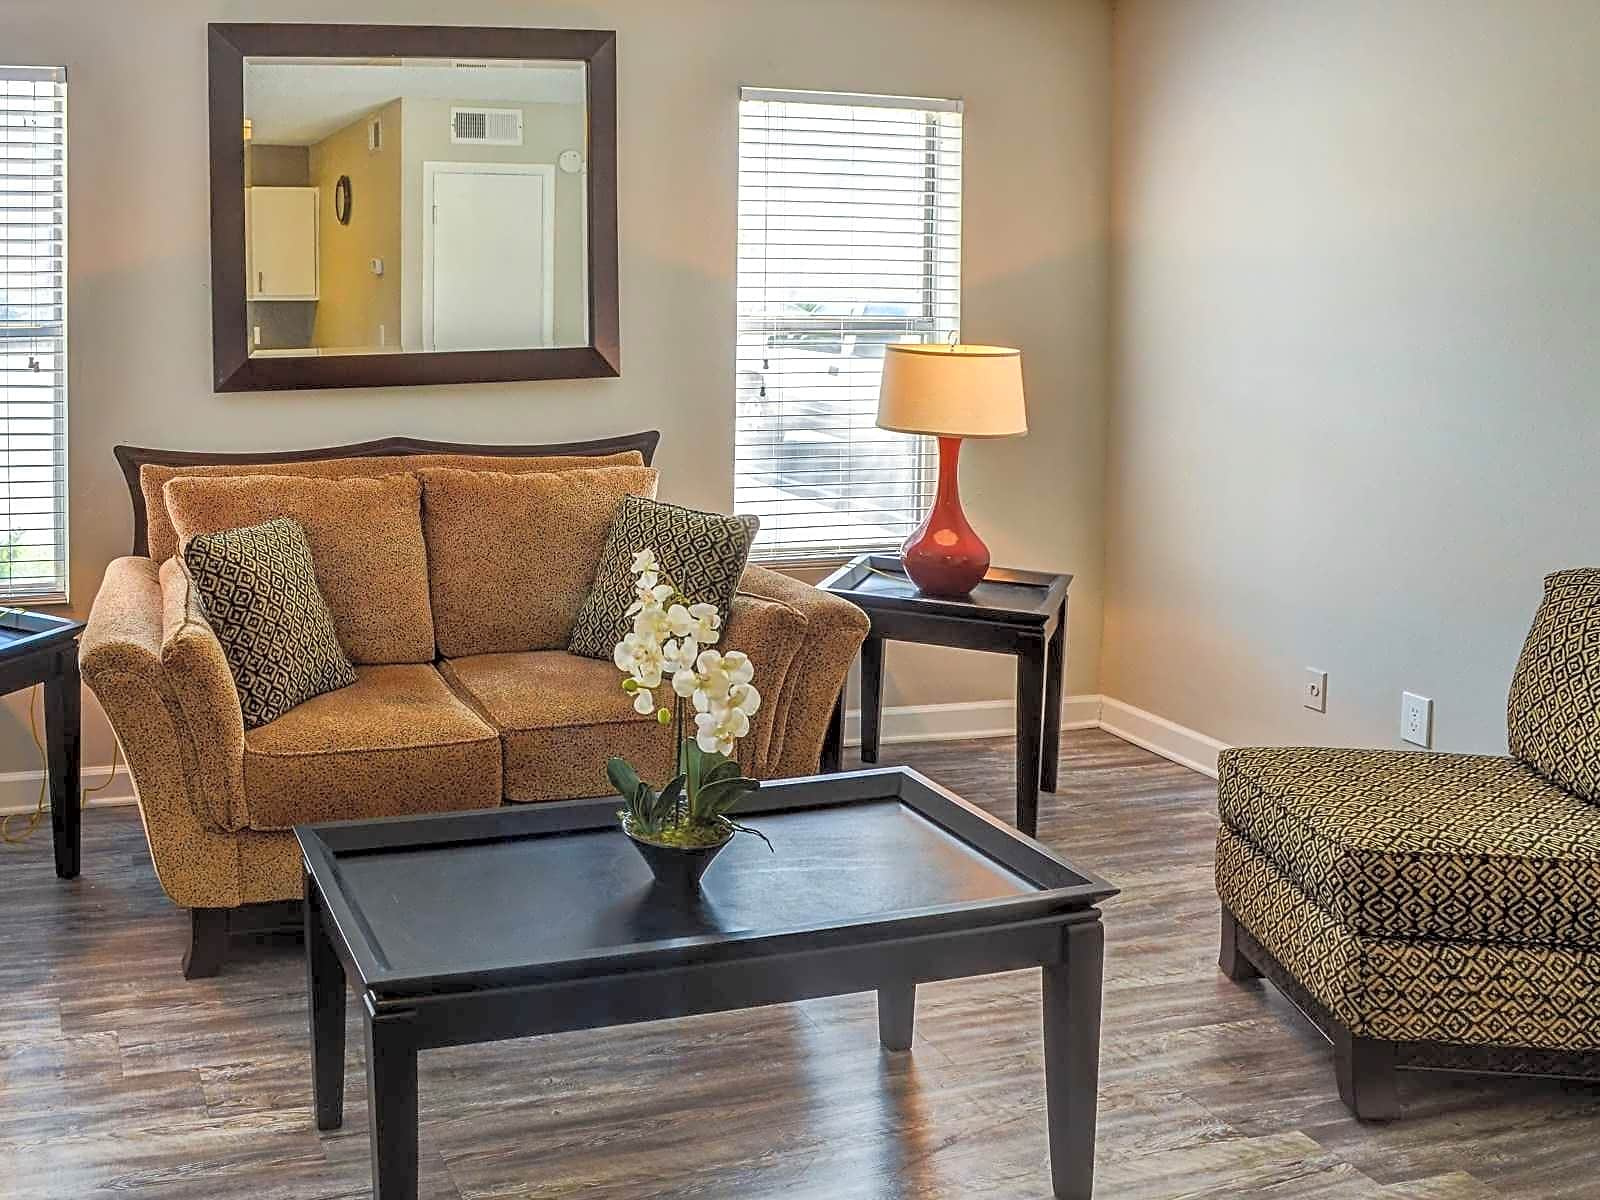 Apartments Near ASU Woodhaven Apartments for Augusta State University Students in Augusta, GA